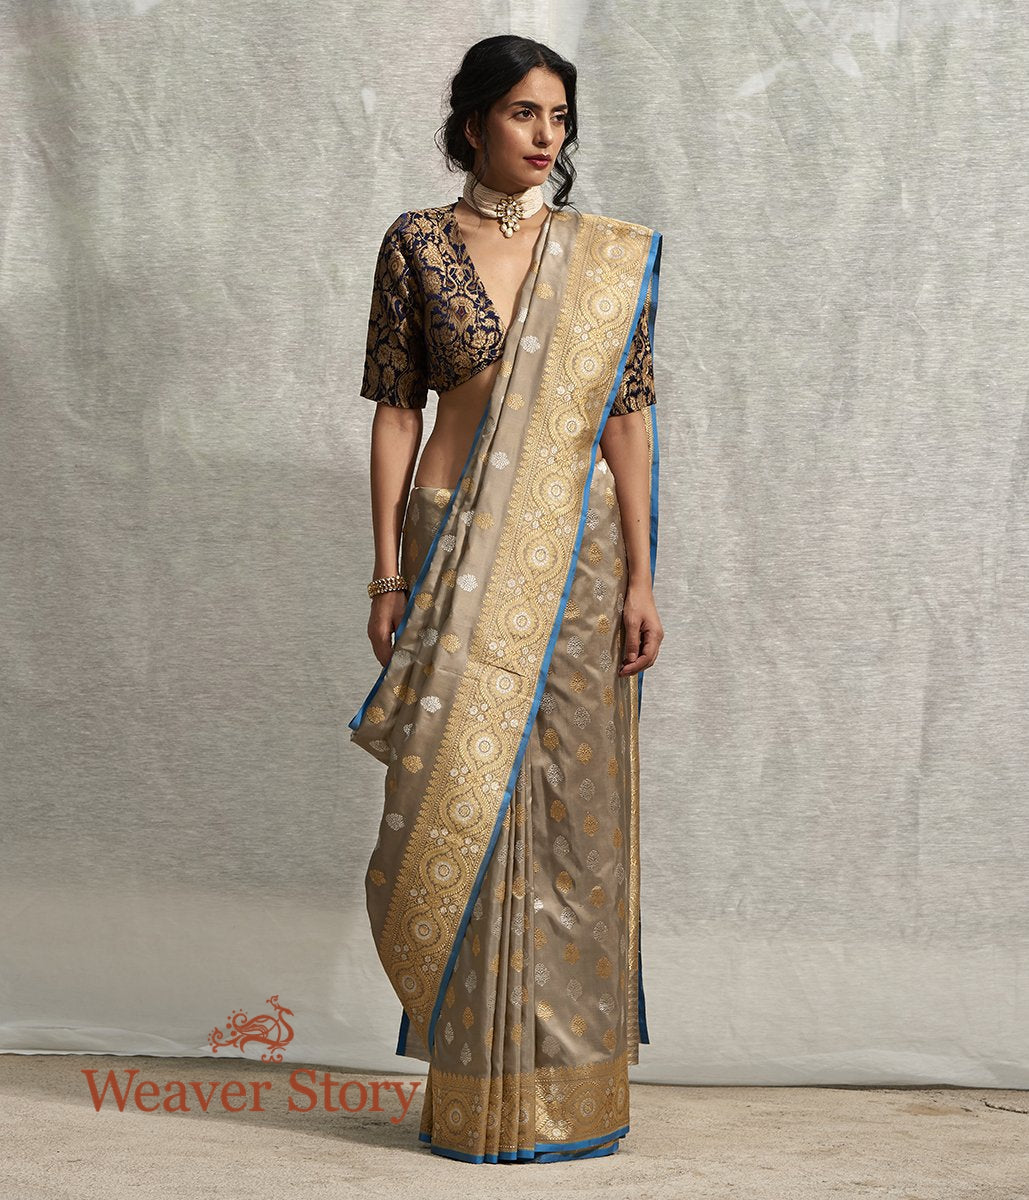 Handwoven Grey and Beige Dual Tone Banarasi Saree with Kadhwa Booti and Blue Selvedge